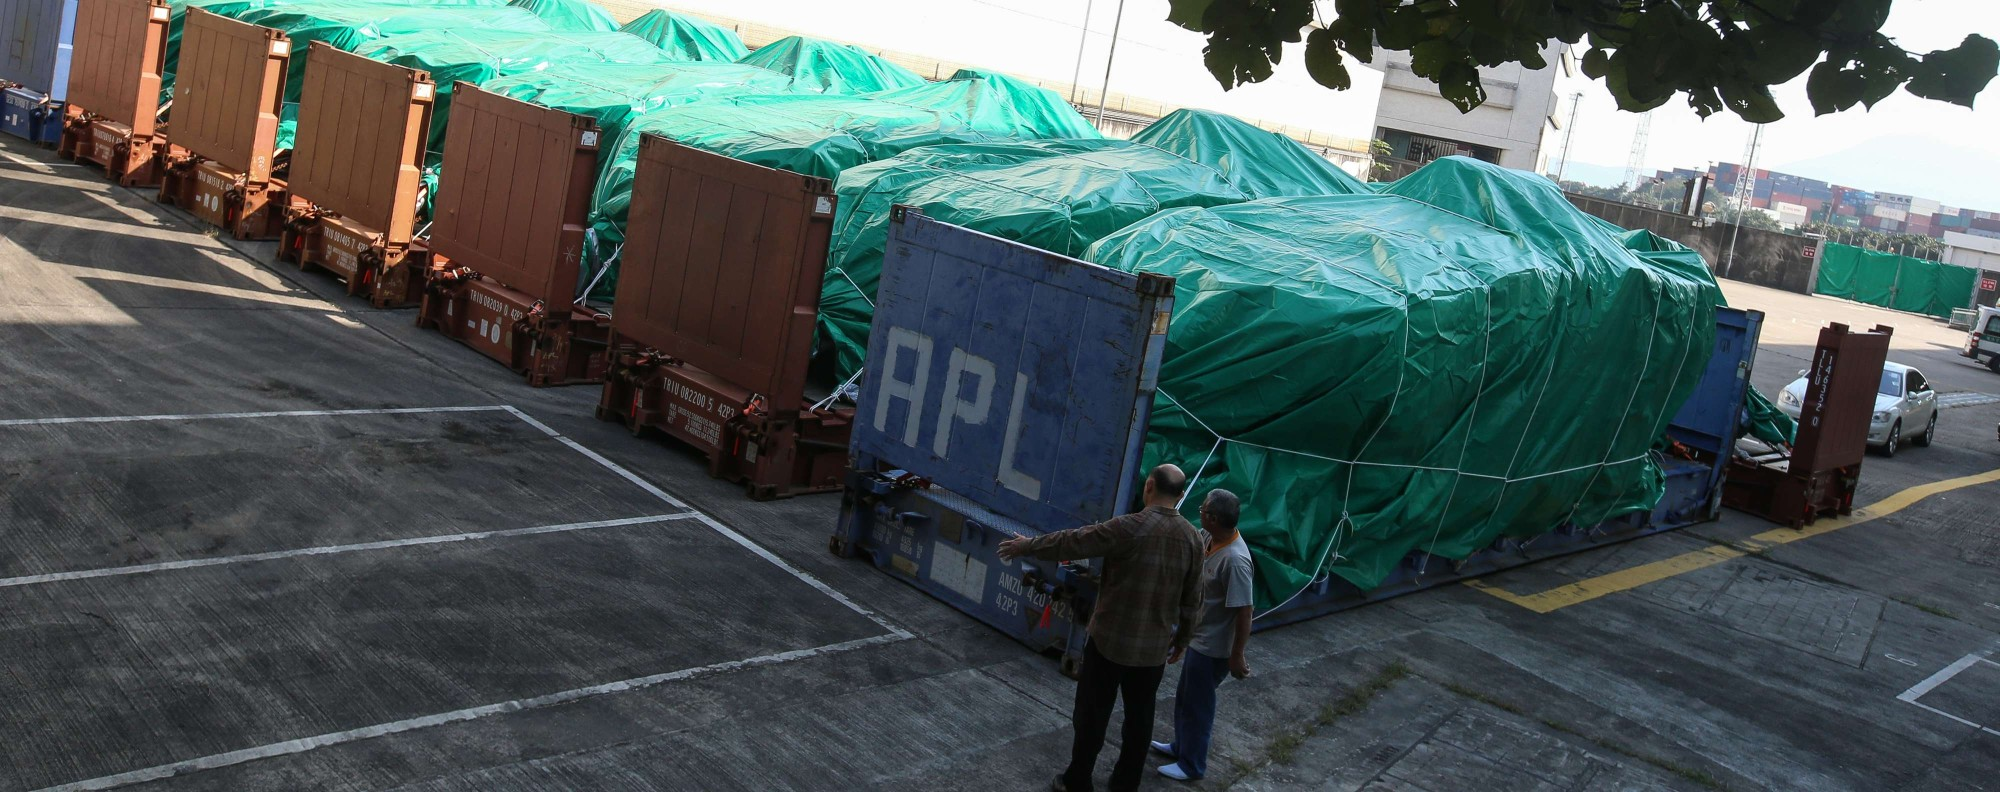 Singapore's military vehicles seized in Hong Kong. Photo: SCMP